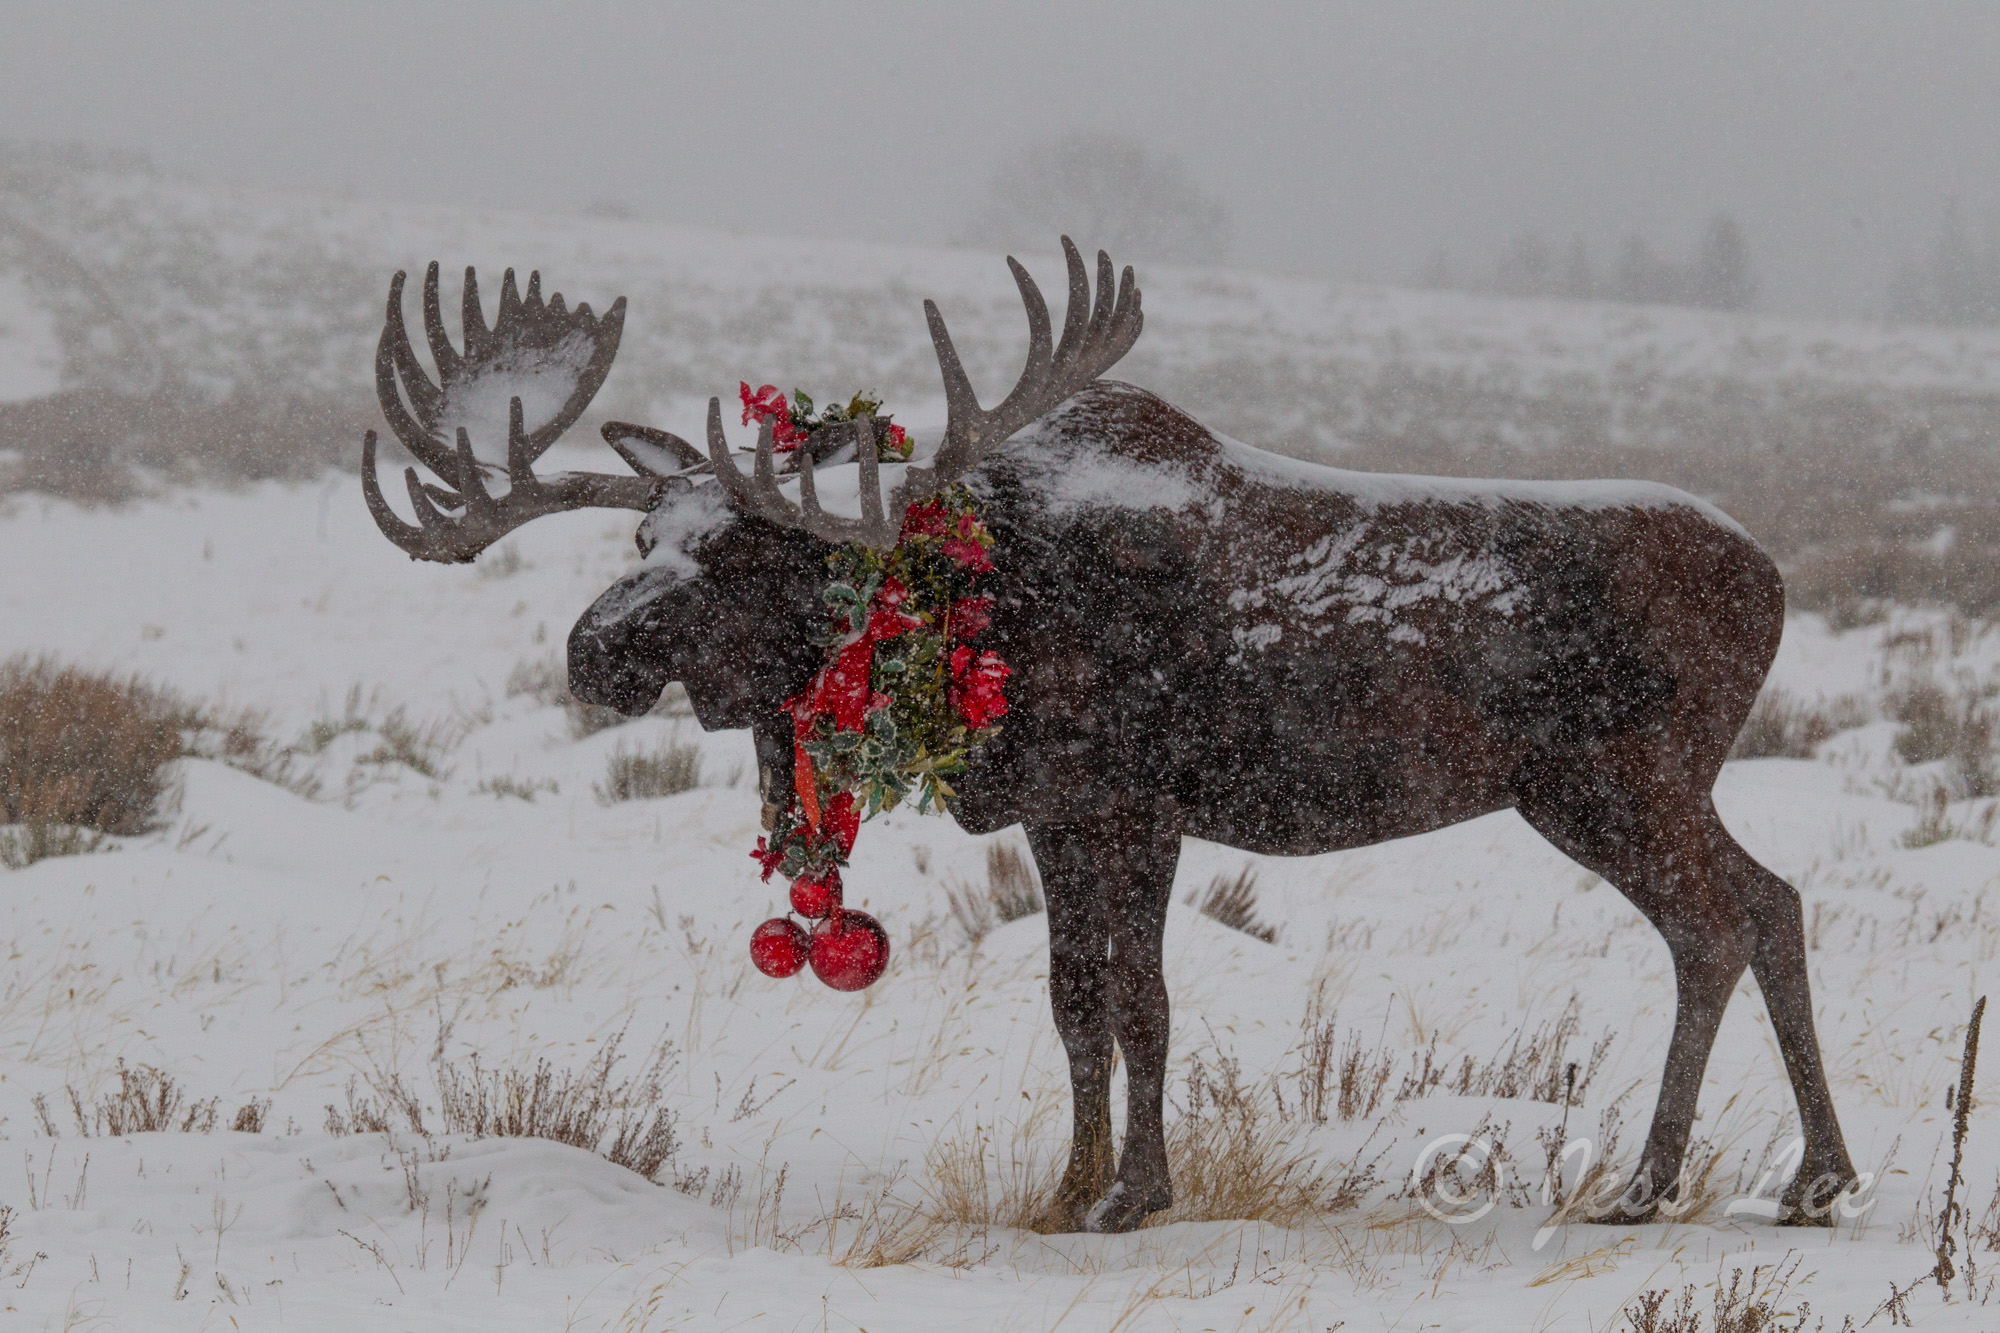 Christmas Moose in Jackson Hole, Wyoming. These Moose fine art photographs are offered as high quality prints for sale as created...